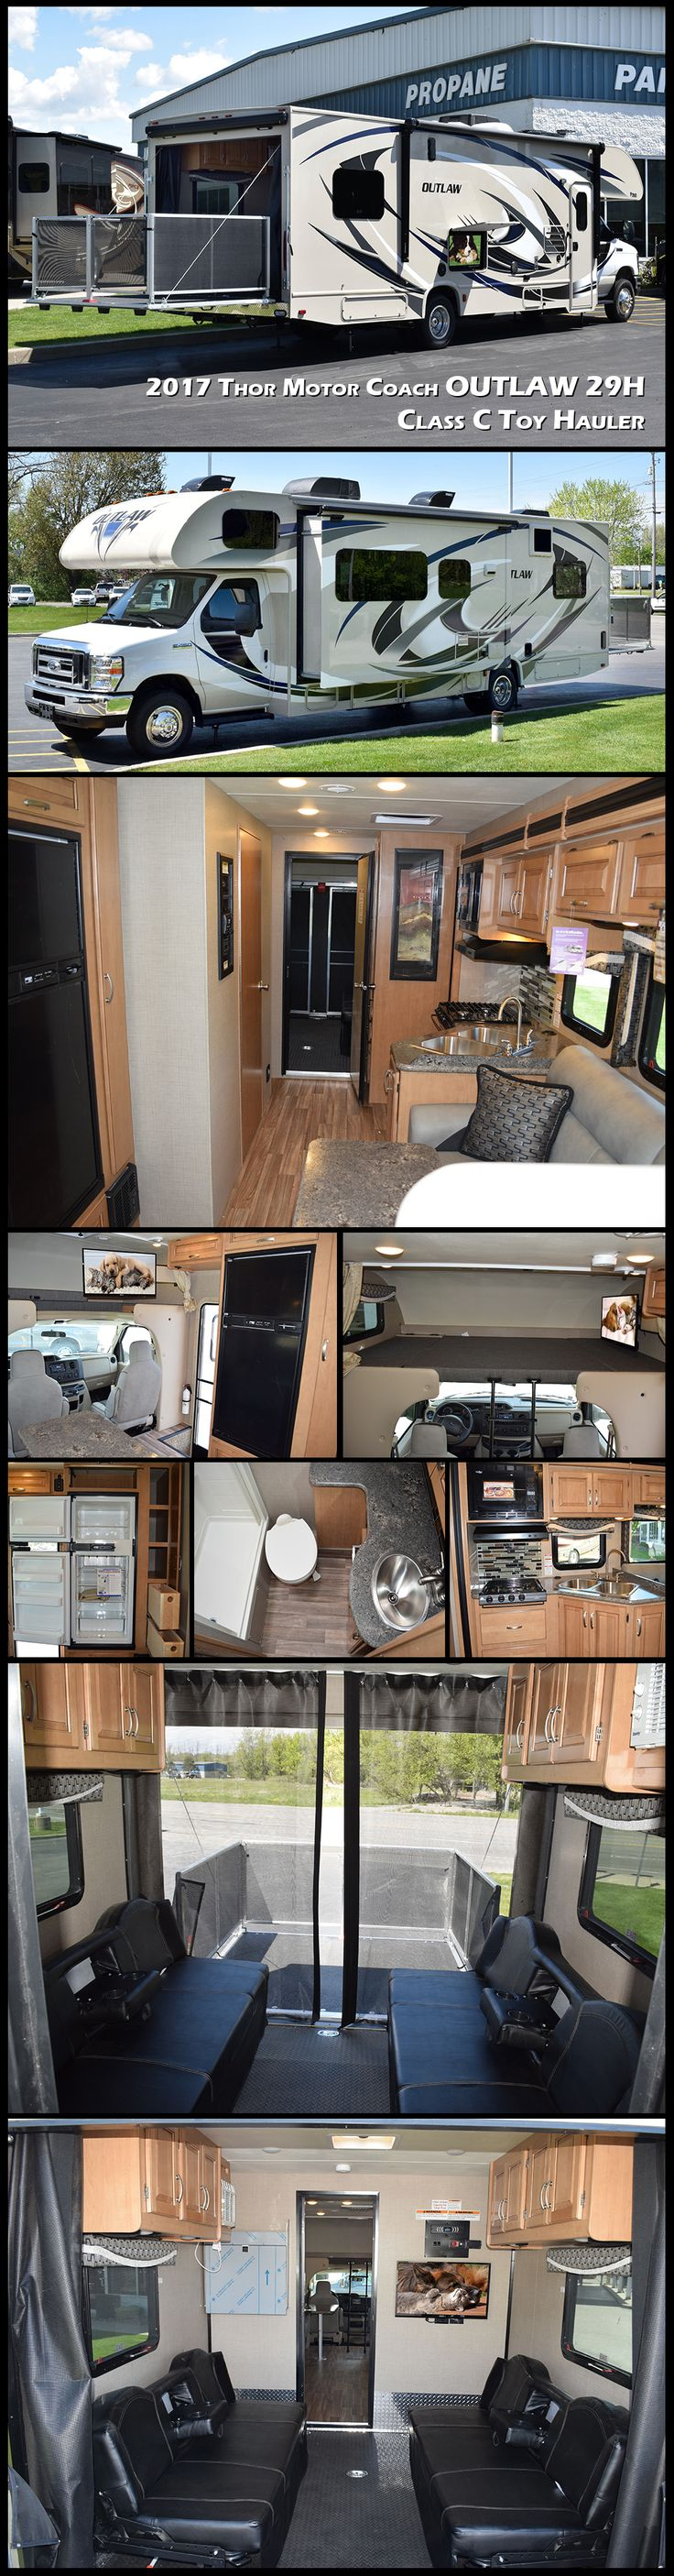 "The OUTLAW 29H breaks the rules of traditional motorhomes and is on everyone's ""Wanted List"". This 2017 Thor Motor Coach Class C TOY HAULER has an expansive garage and ultra-flexible living space. Whether it is to fuel your passion for motocross or to accommodate your thriving business with a mobile office, the possibilities are limitless. Relax on the opposing leatherette sofas in the garage bug free, thanks to the bug screen curtain! You can also enjoy the outdoors on your private PATIO…"